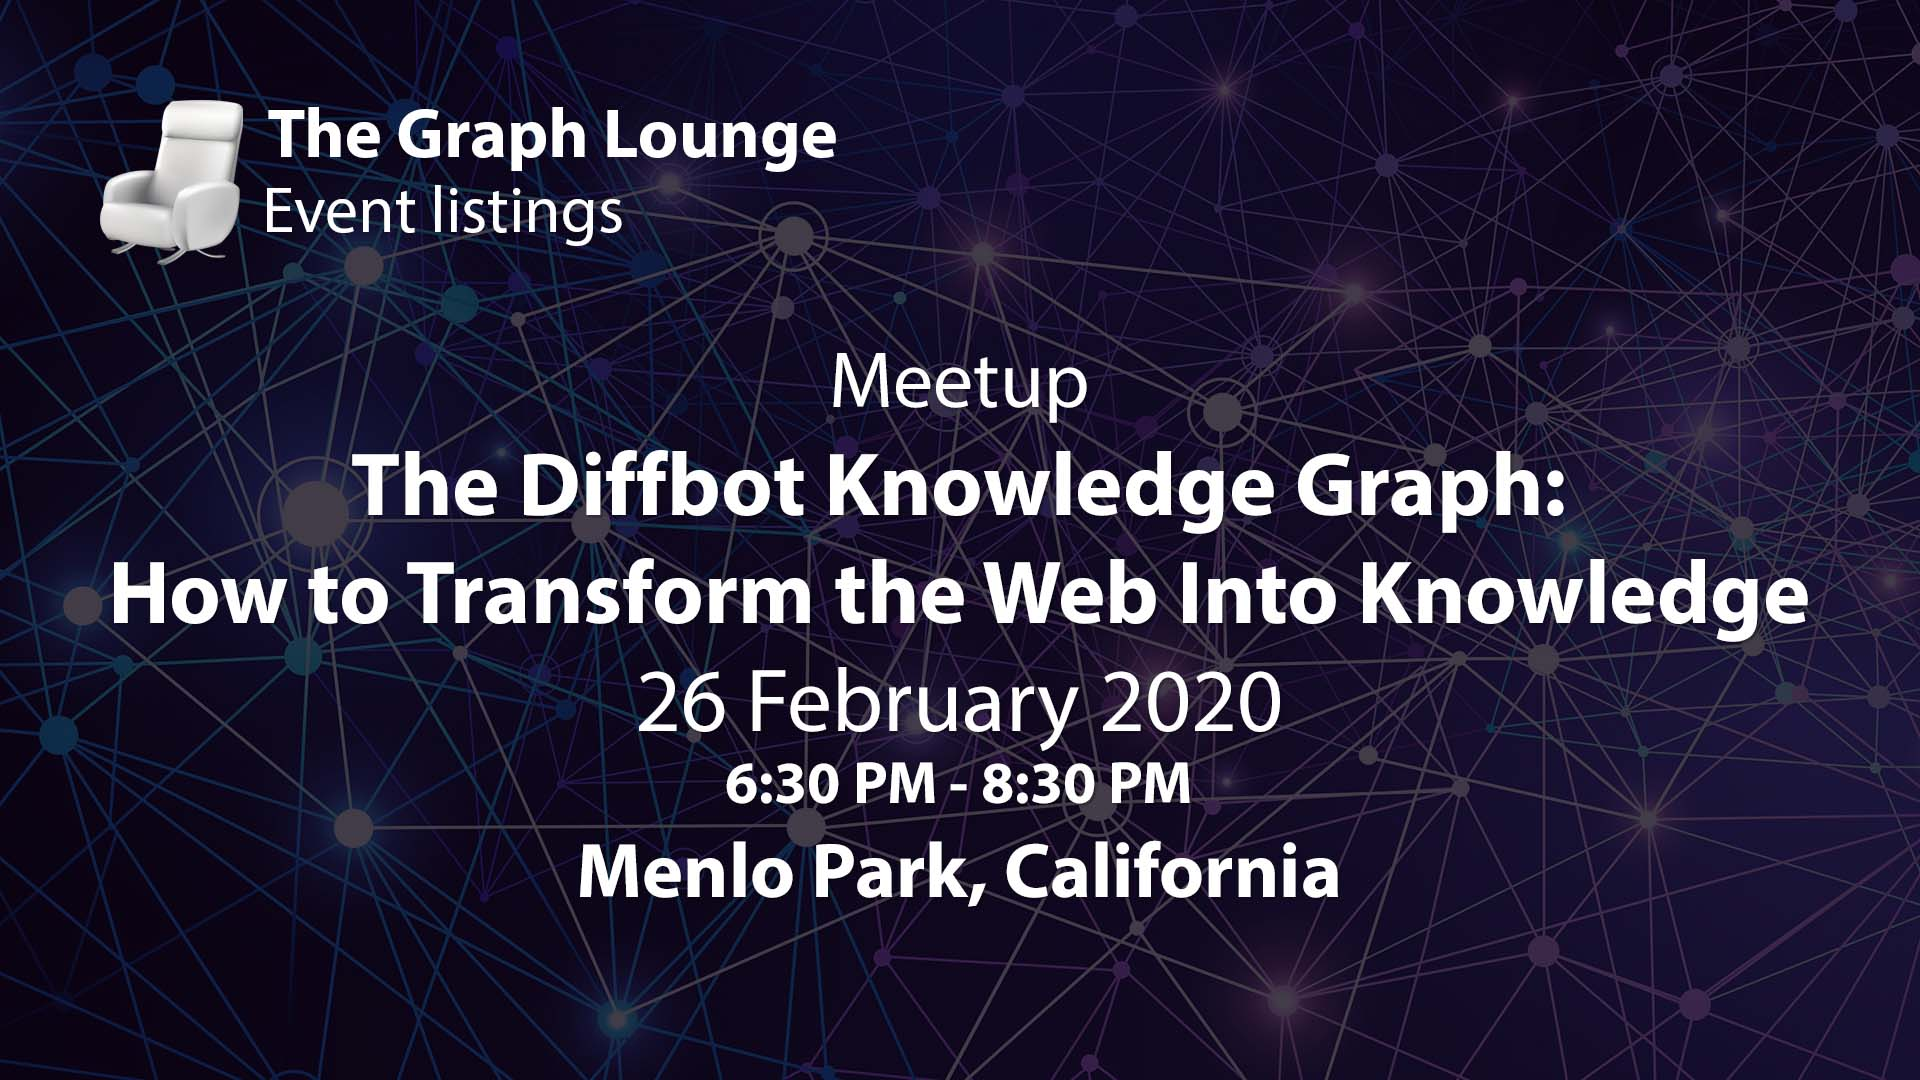 The Diffbot Knowledge Graph: How to Transform the Web Into Knowledge